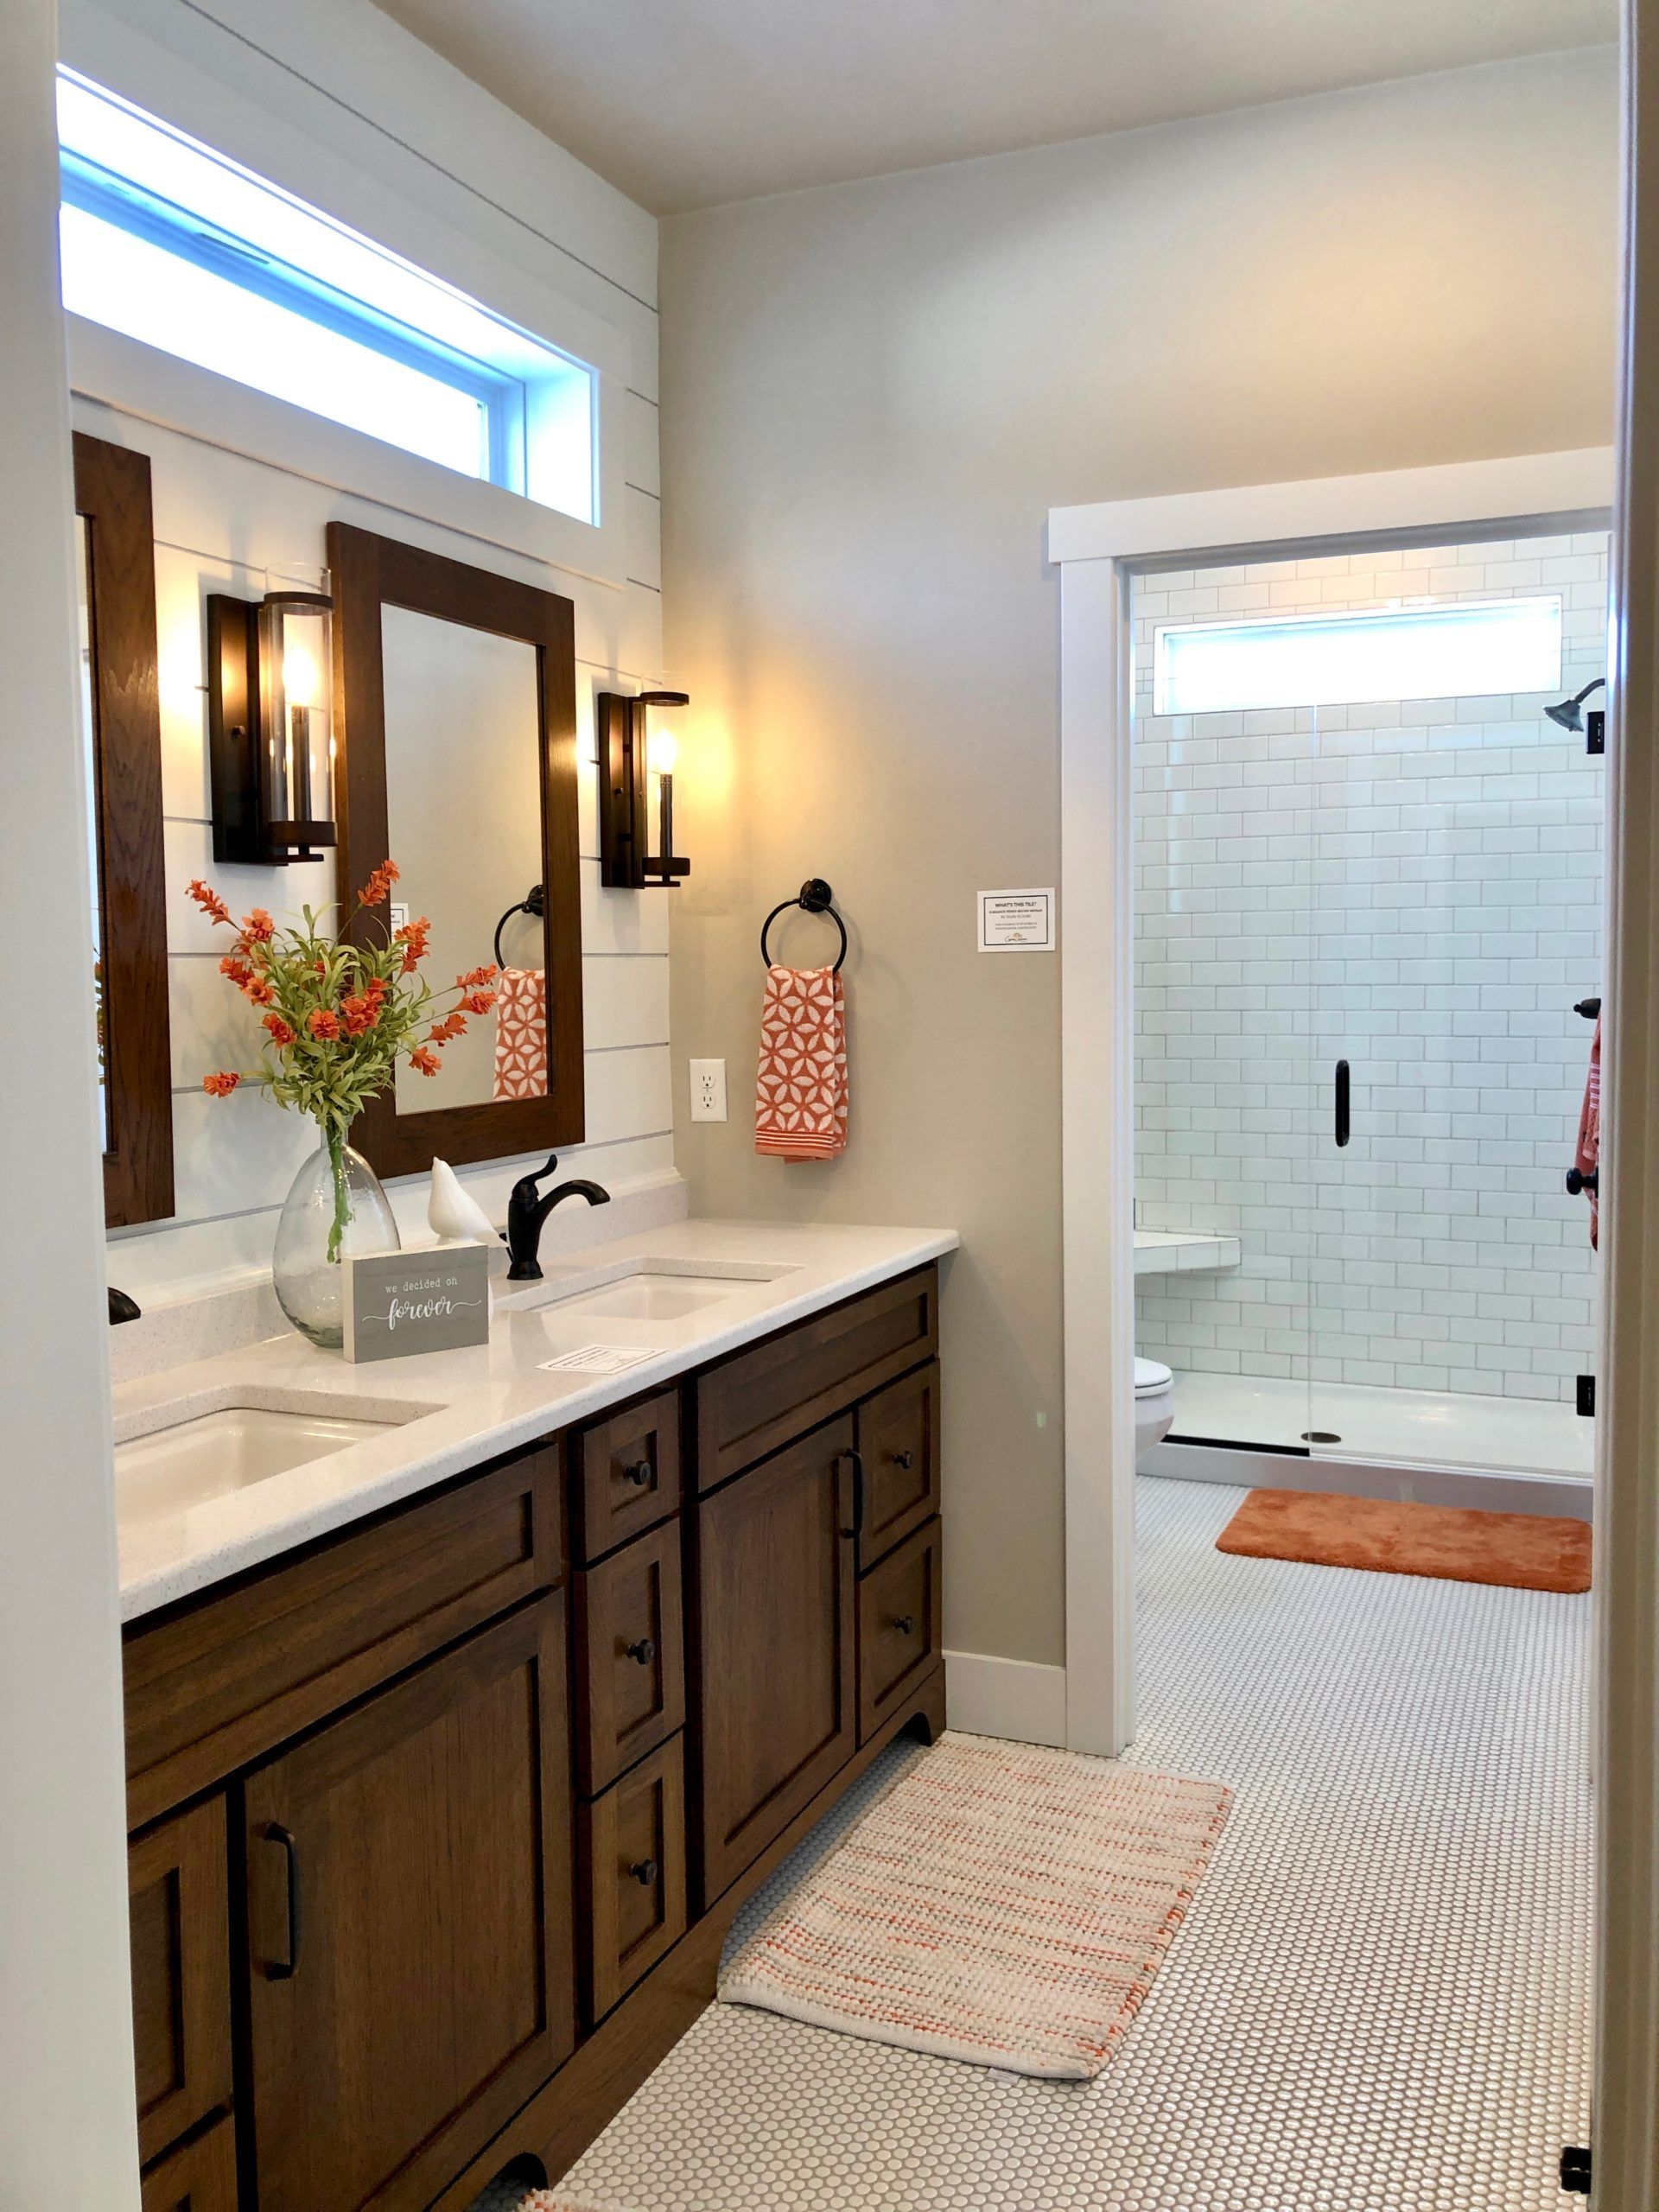 Fresh Bathroom with Bright, Cheerful Colors in 2020 Home